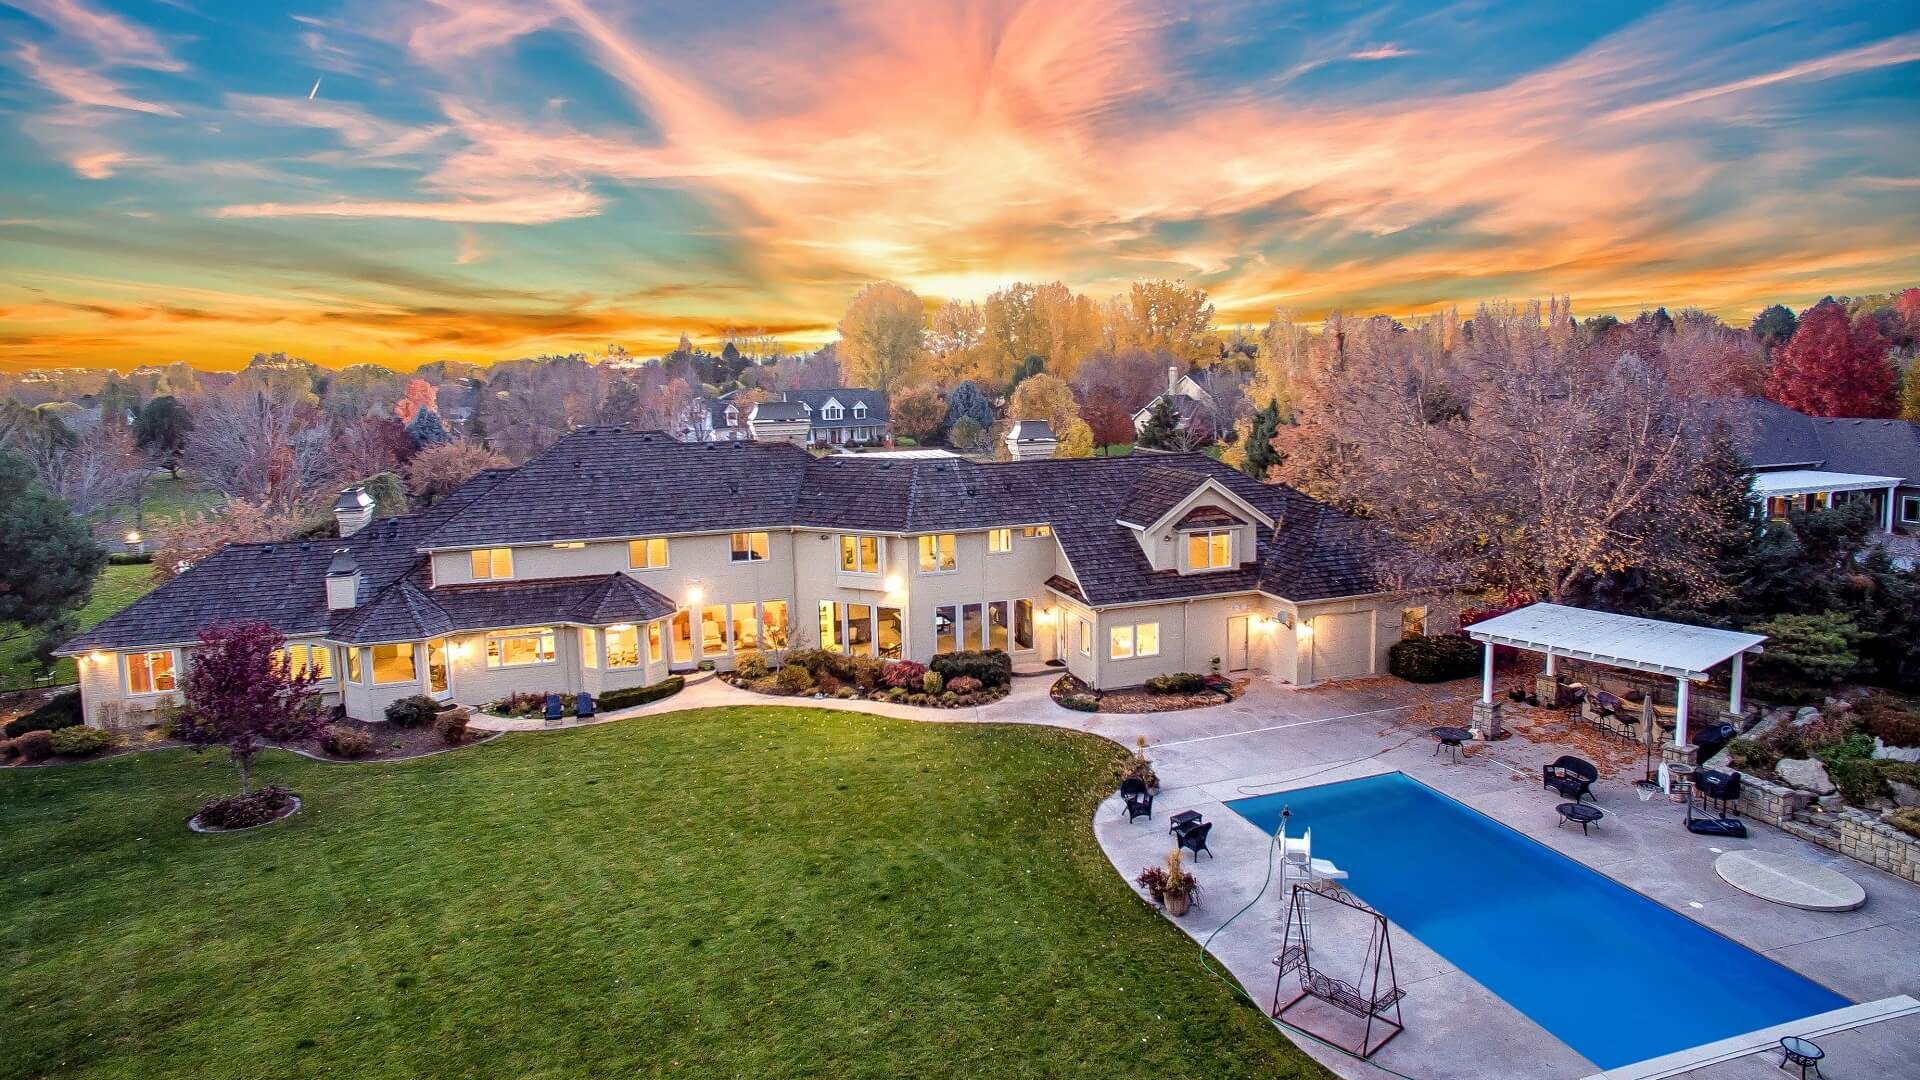 Gorgeous sunset over Estate Home on Ram Drive with large yard and pool